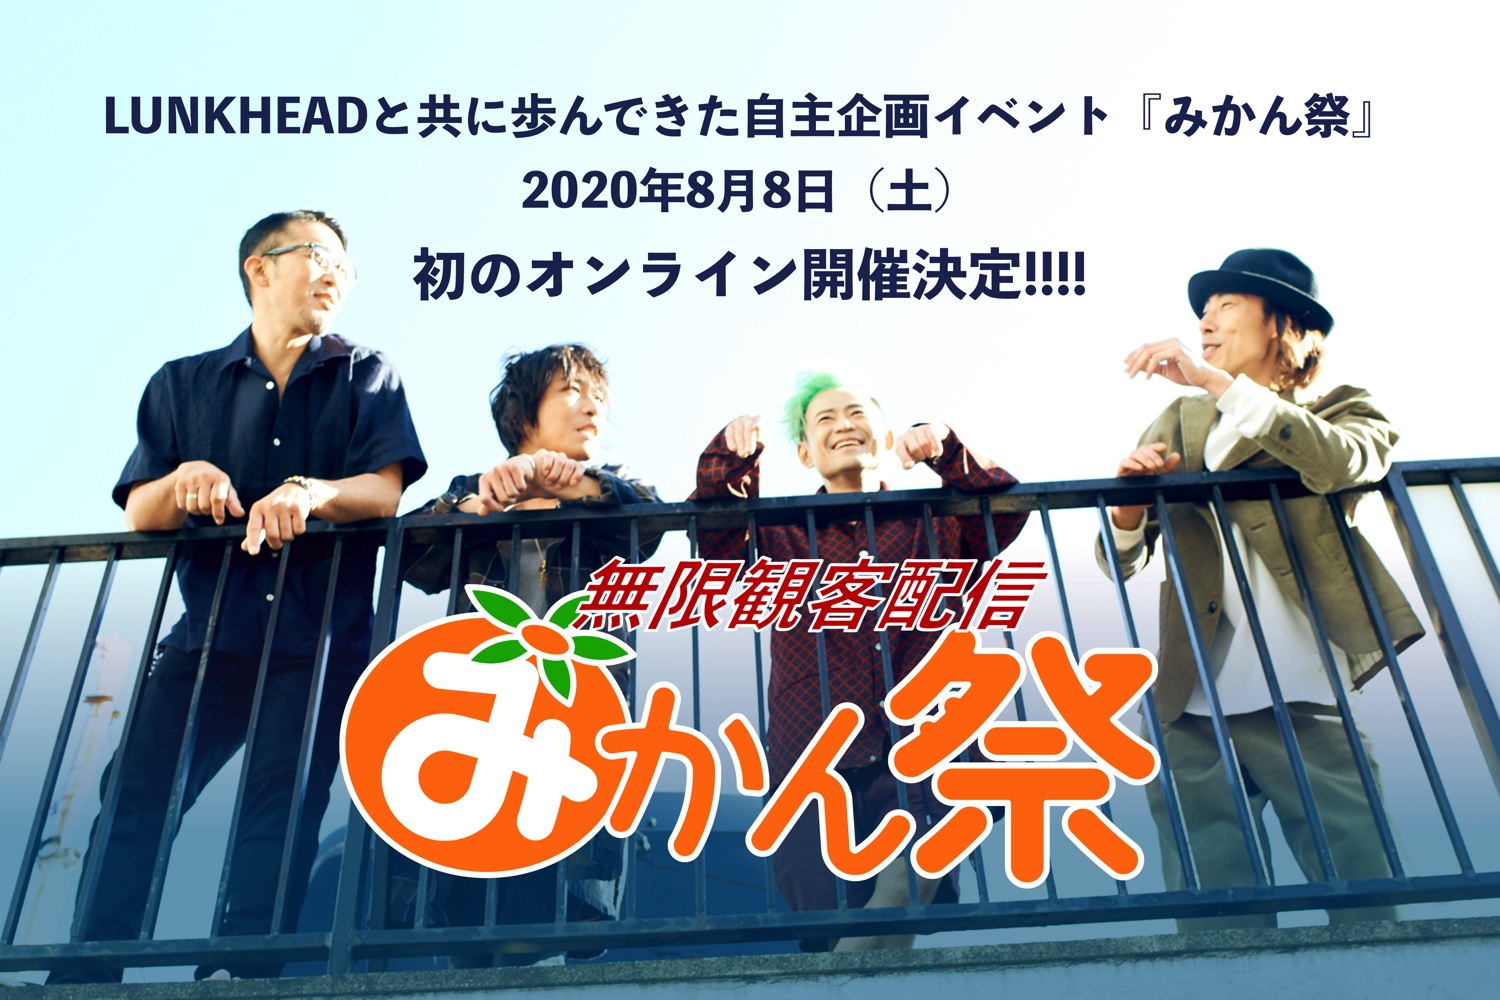 LUNKHEAD 無限観客配信みかん祭